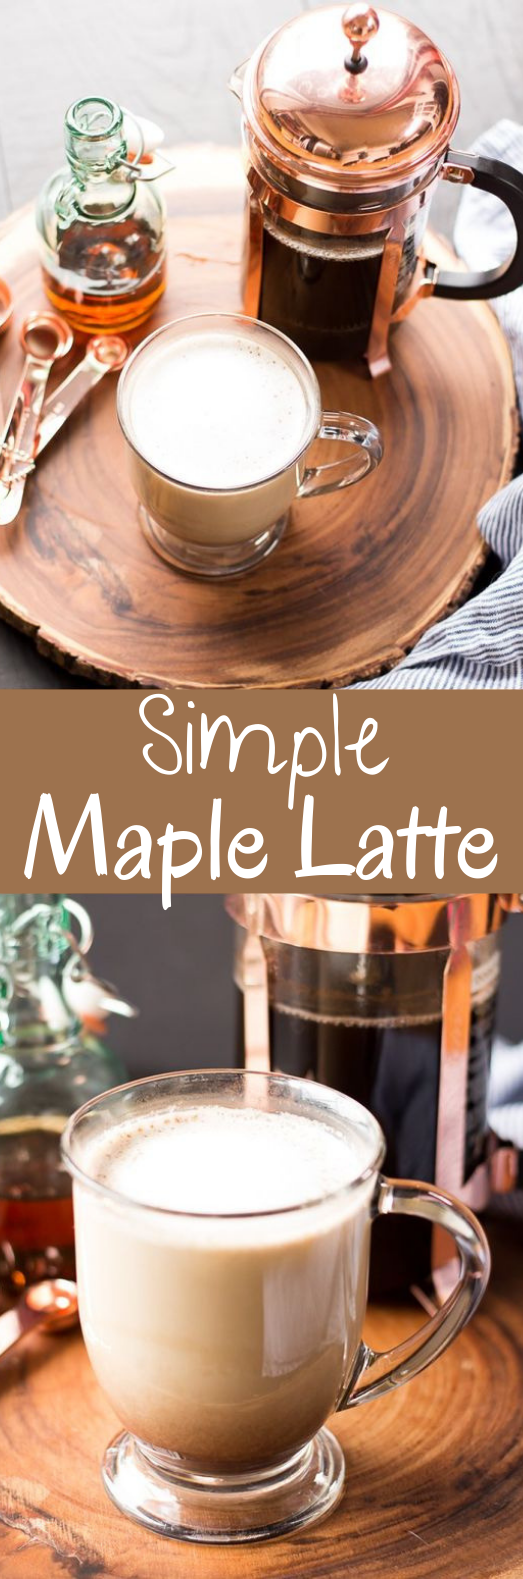 Simple Maple Latte #drinks #latte